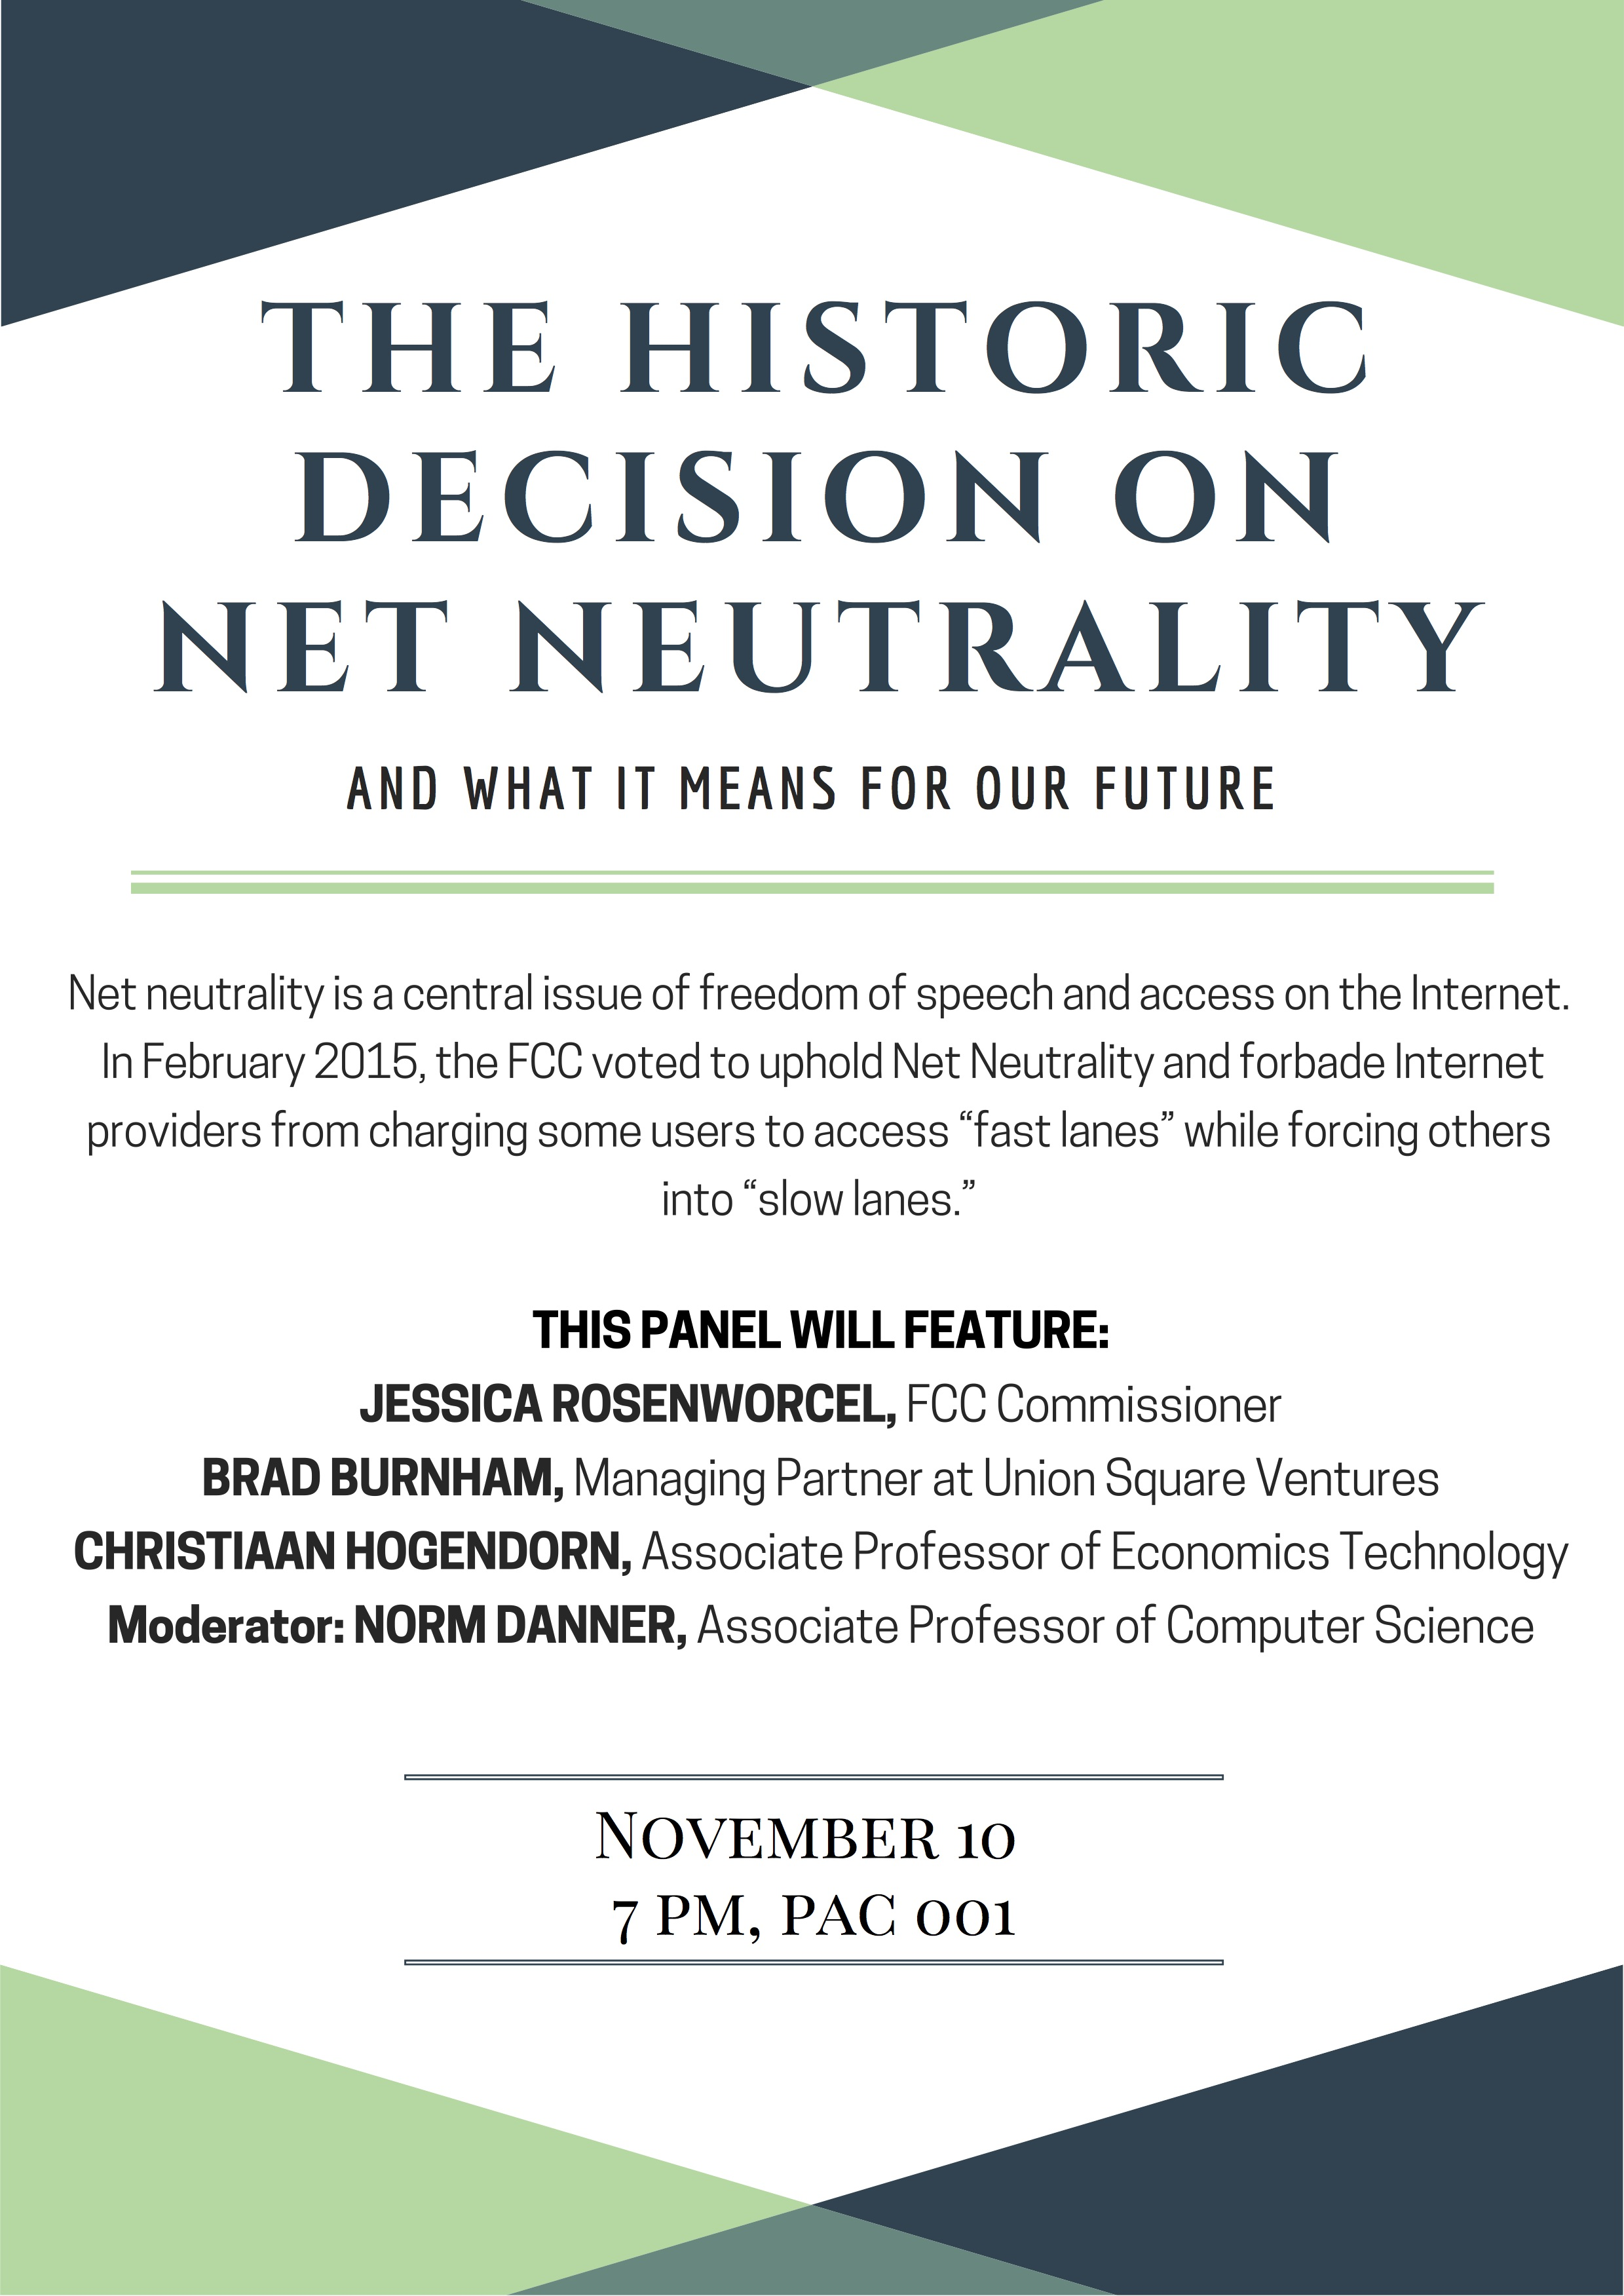 http://engageduniversity.blogs.wesleyan.edu/files/2016/10/Net-Neutrality-2.jpg